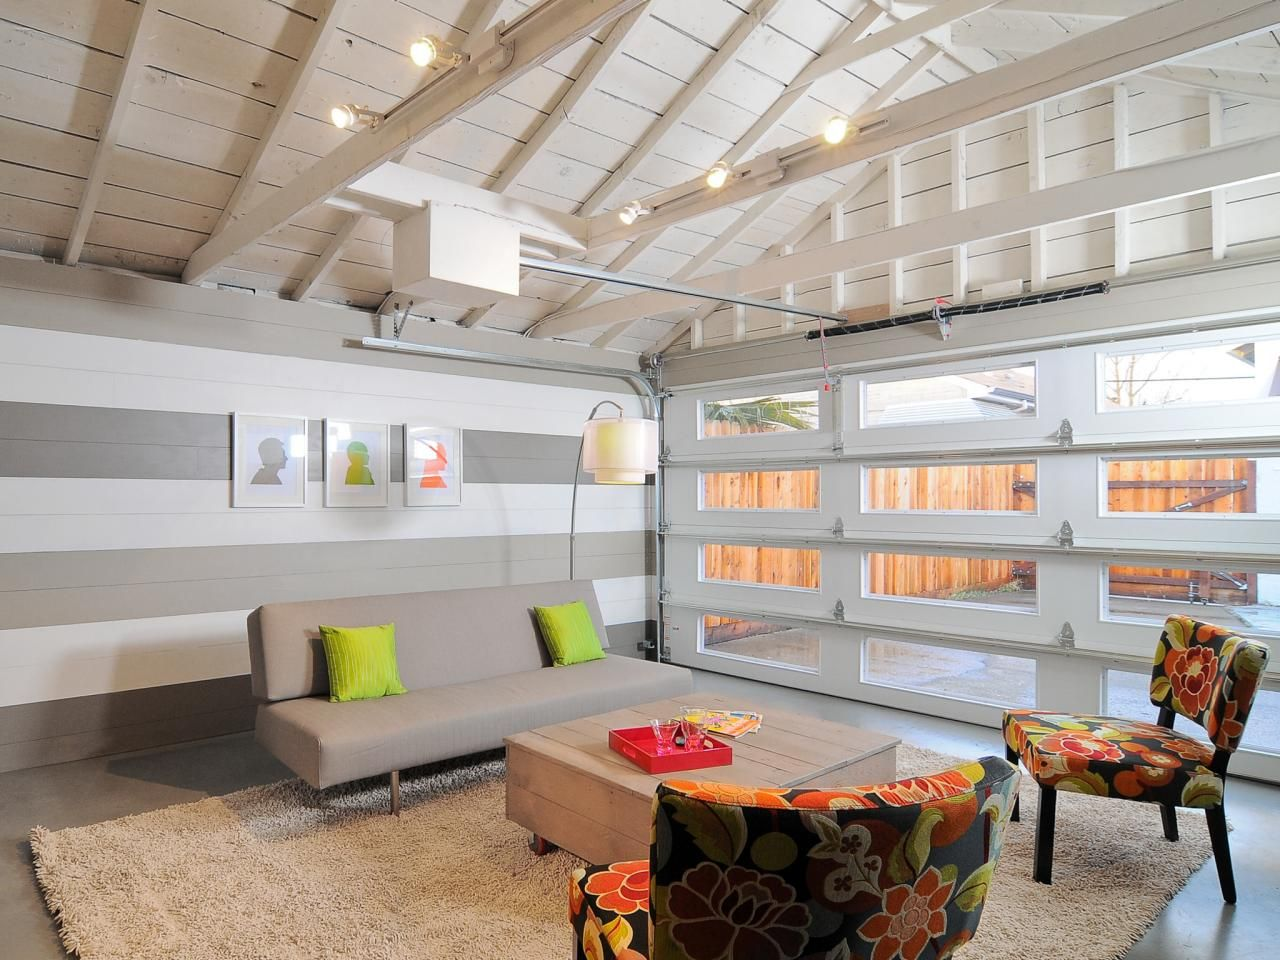 15 Home Garages Transformed Into Beautiful Living Spaces ...